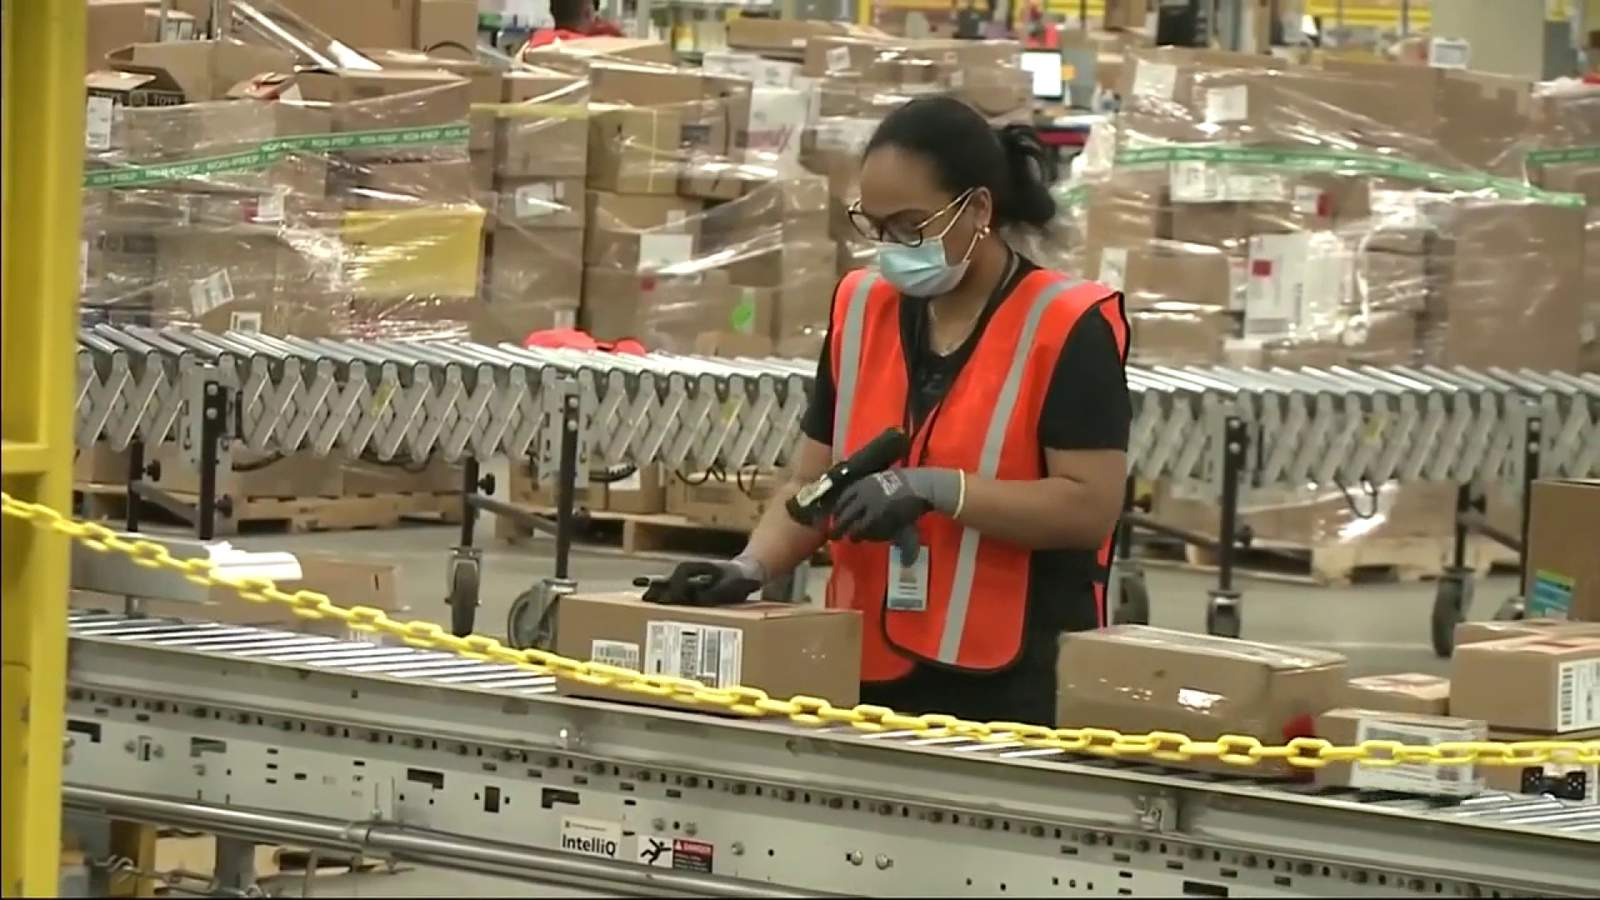 Amazon hiring 1,300 workers in South Florida  image